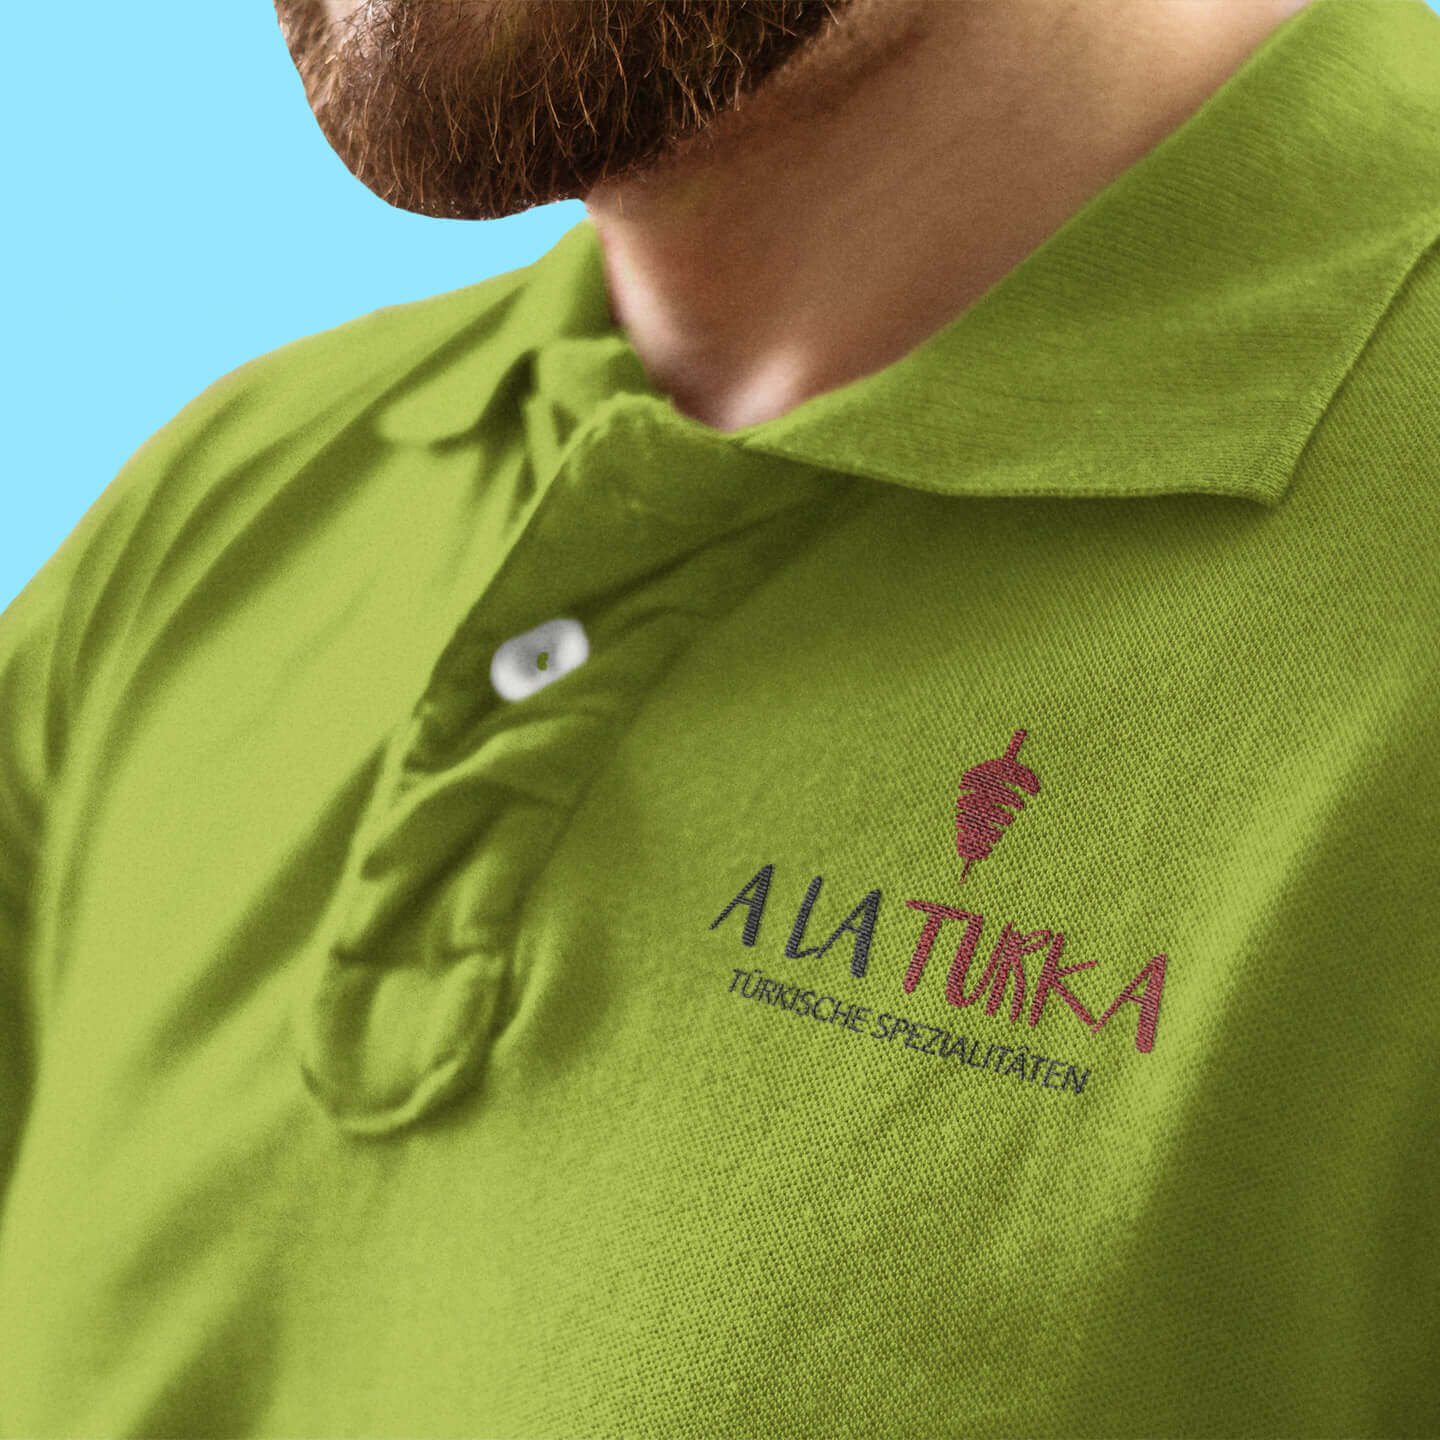 A La Turka Polo T-Shirt